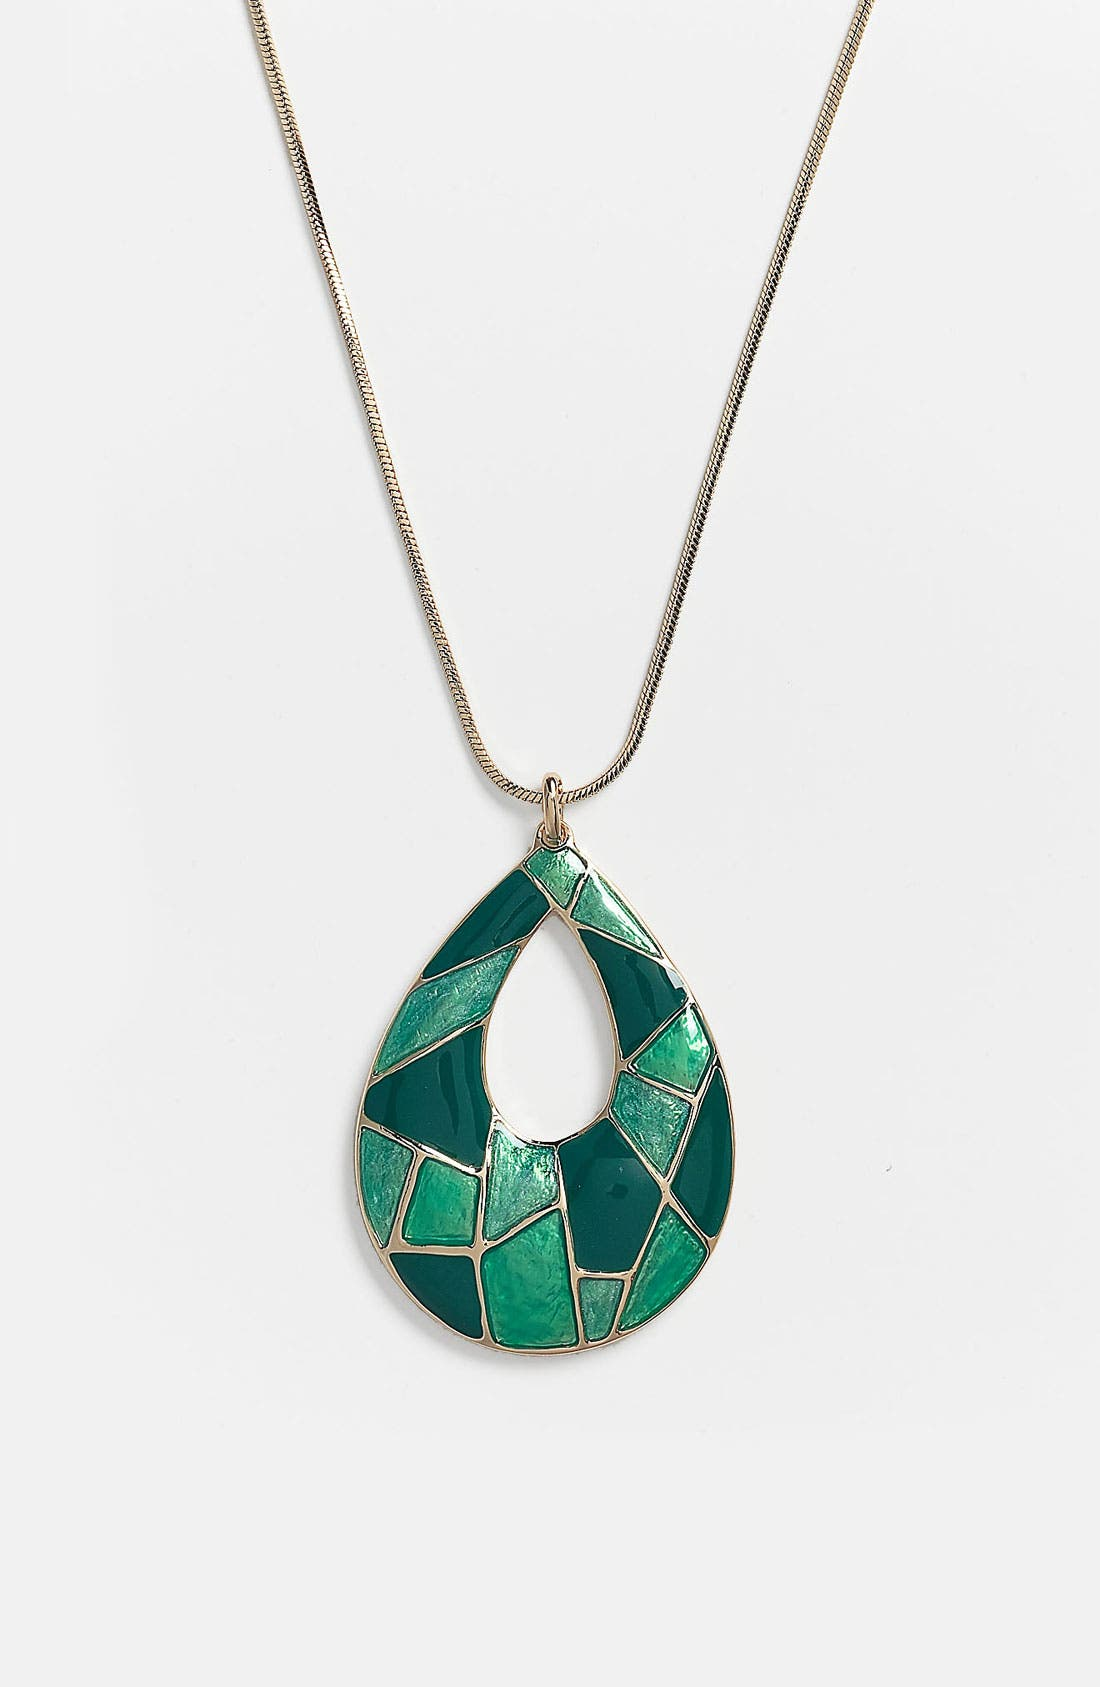 Main Image - Nordstrom 'Mosaics' Reversible Pendant Necklace